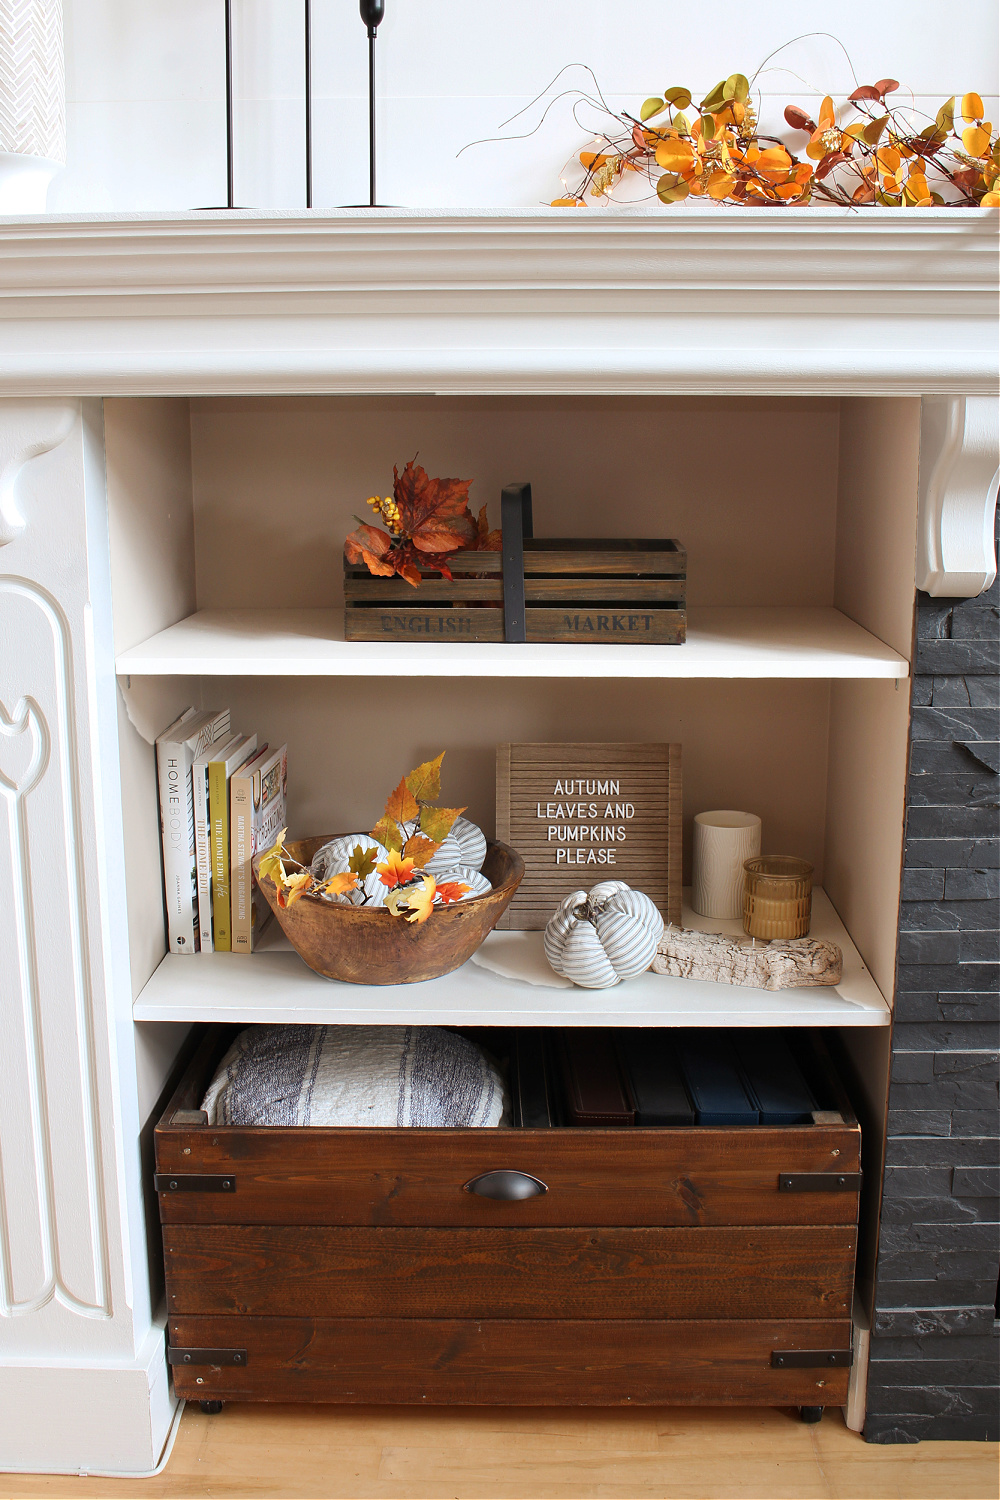 Shelves decorated for fall.